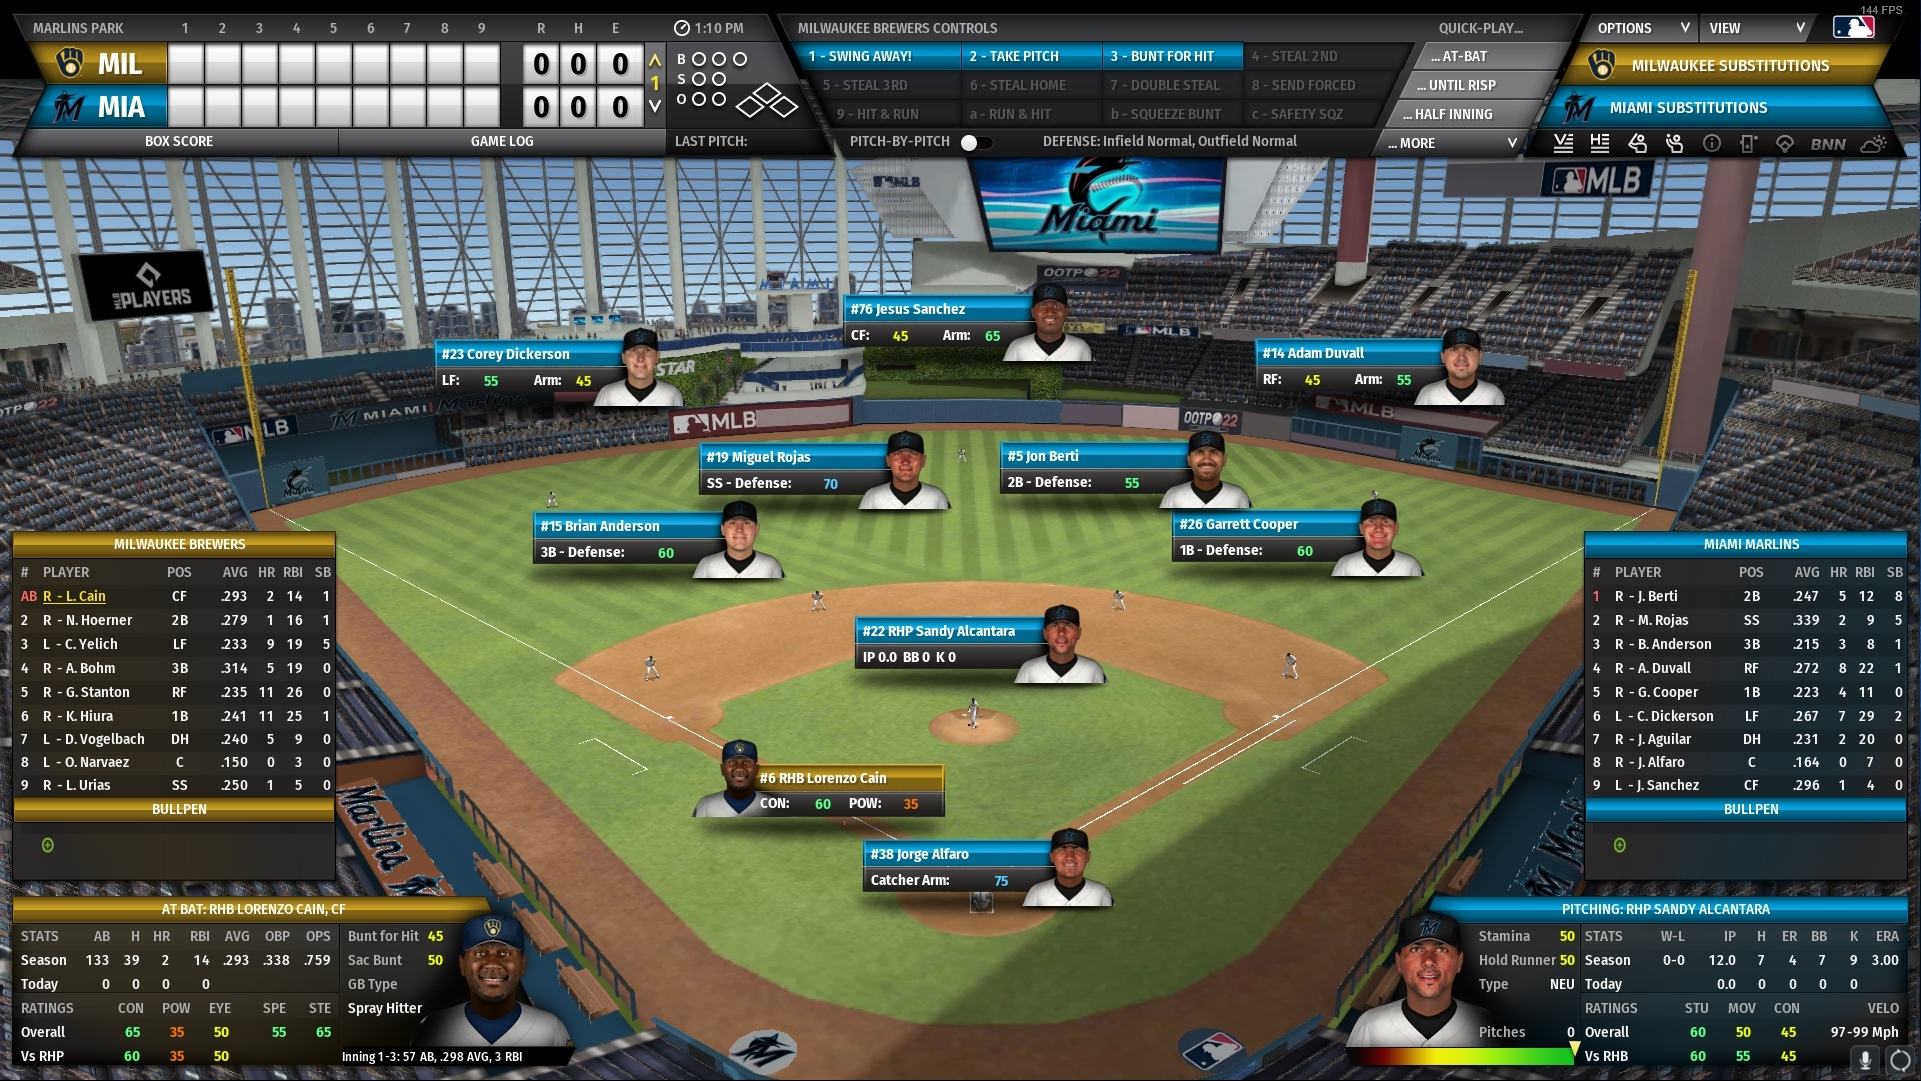 OOTP In-game view